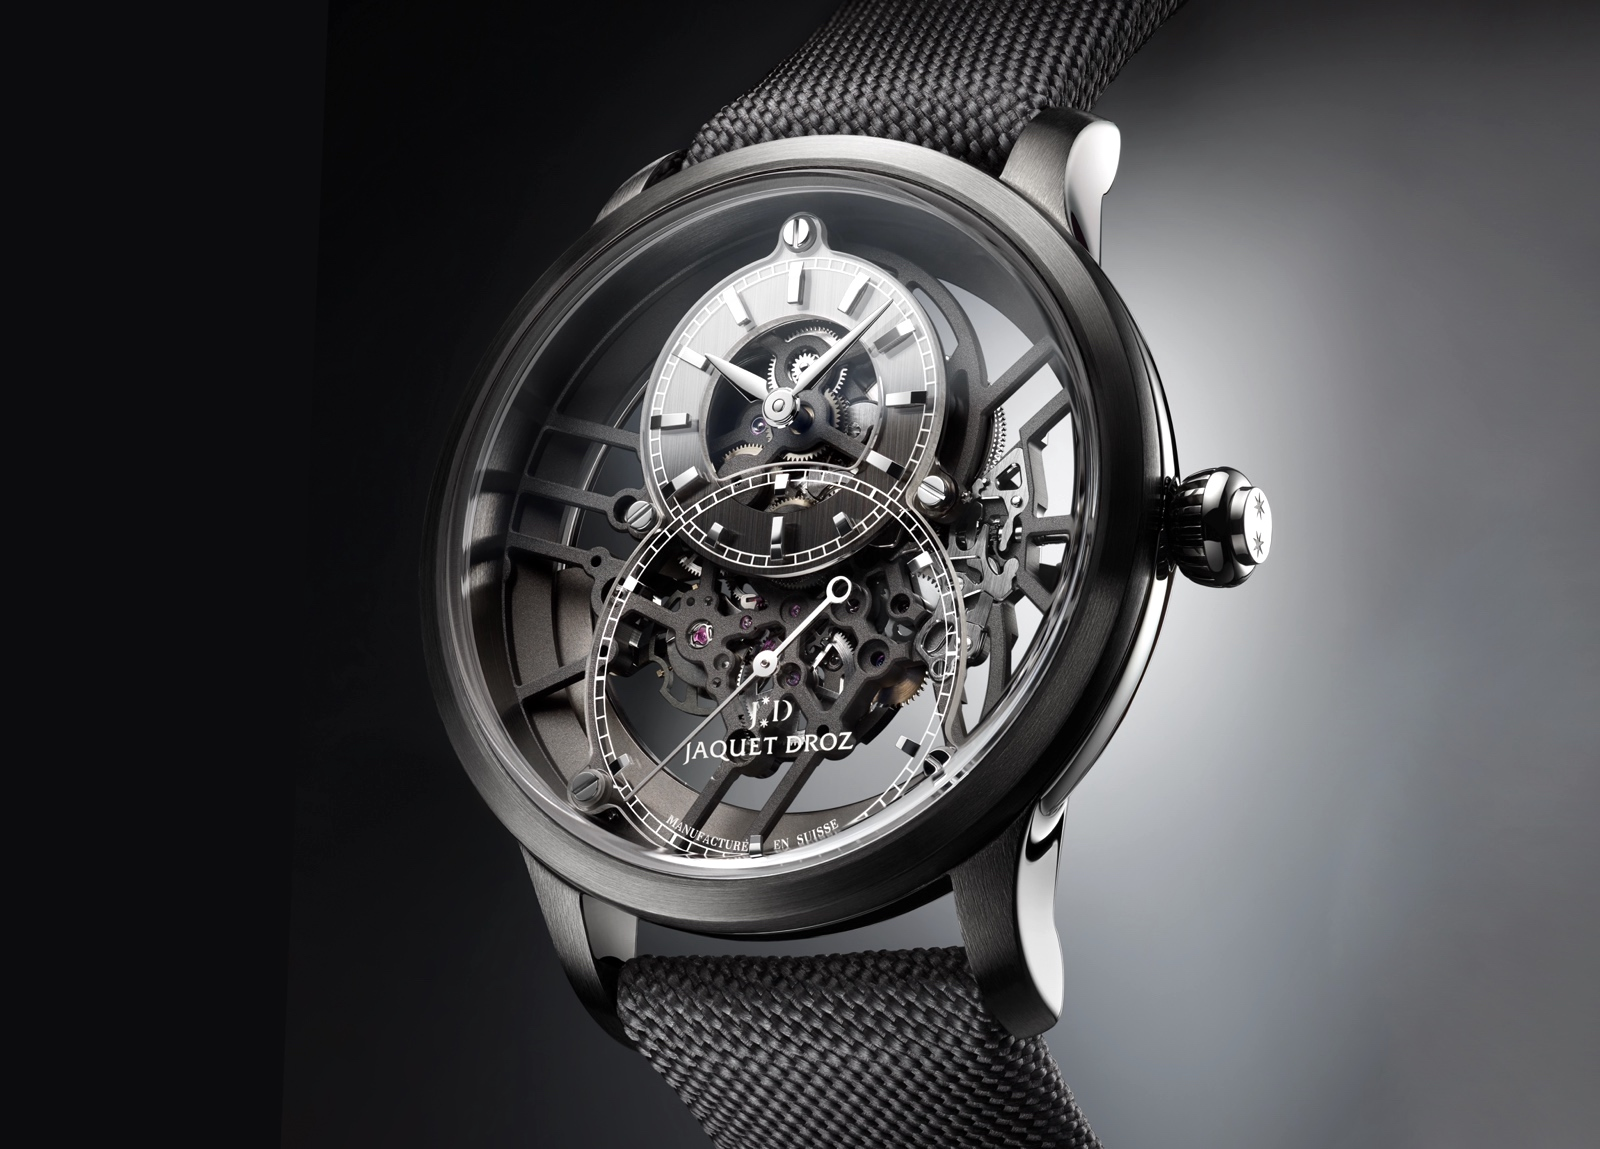 Jaquet Droz Grande Seconde Skelet-One 2020 - plasma ceramic